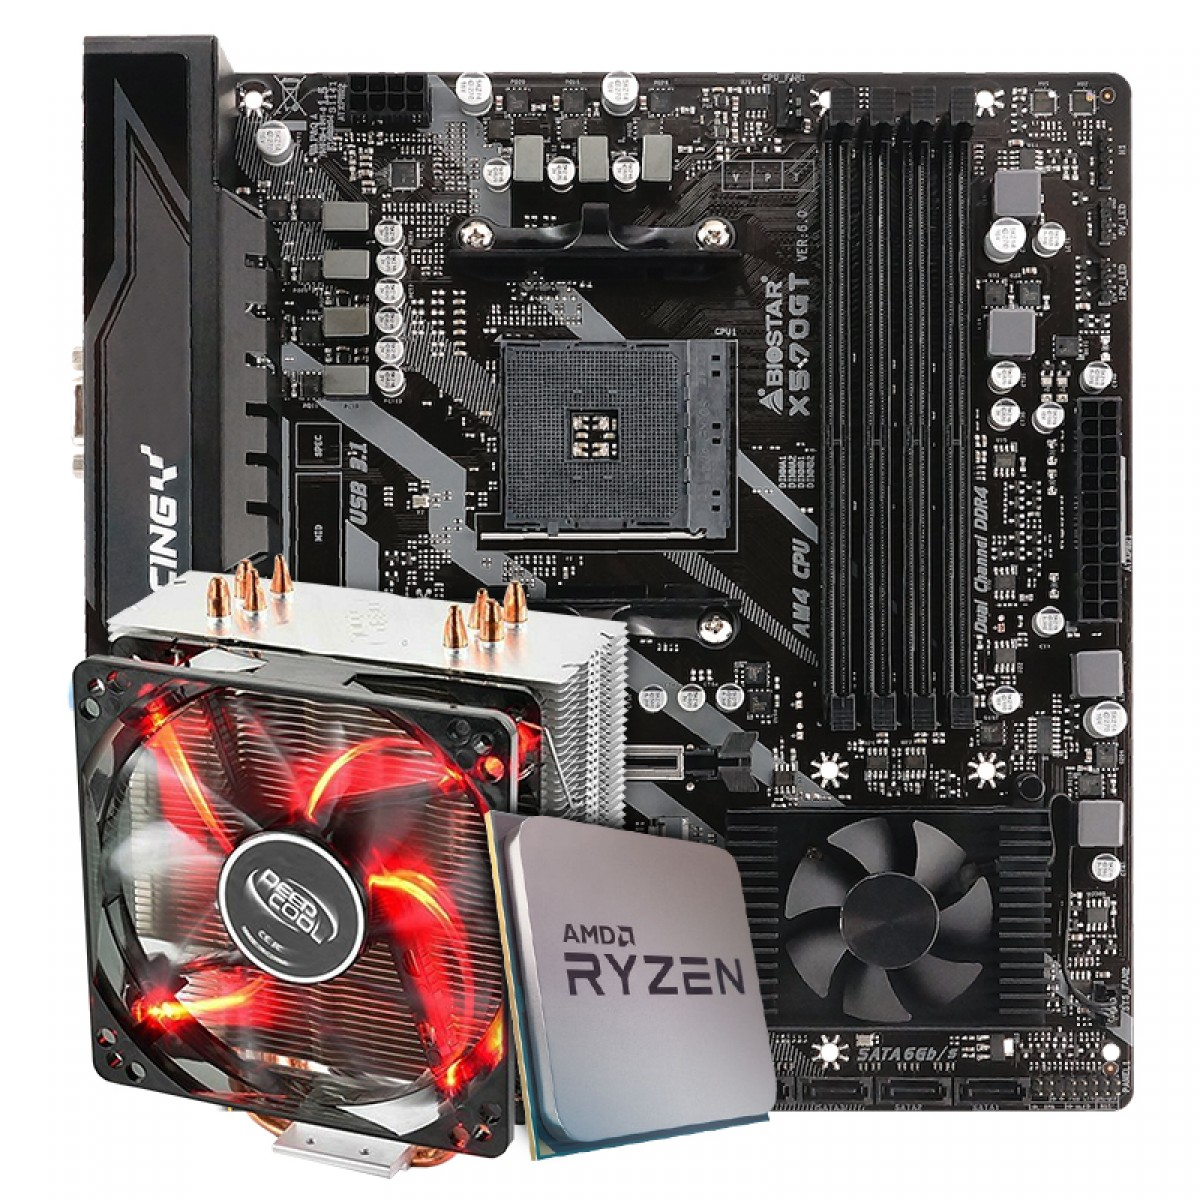 Kit Upgrade Placa Mãe Biostar Racing X570GT + Processador AMD Ryzen 7 3800x 3.9GHz + Cooler DeepCool Gammaxx 400